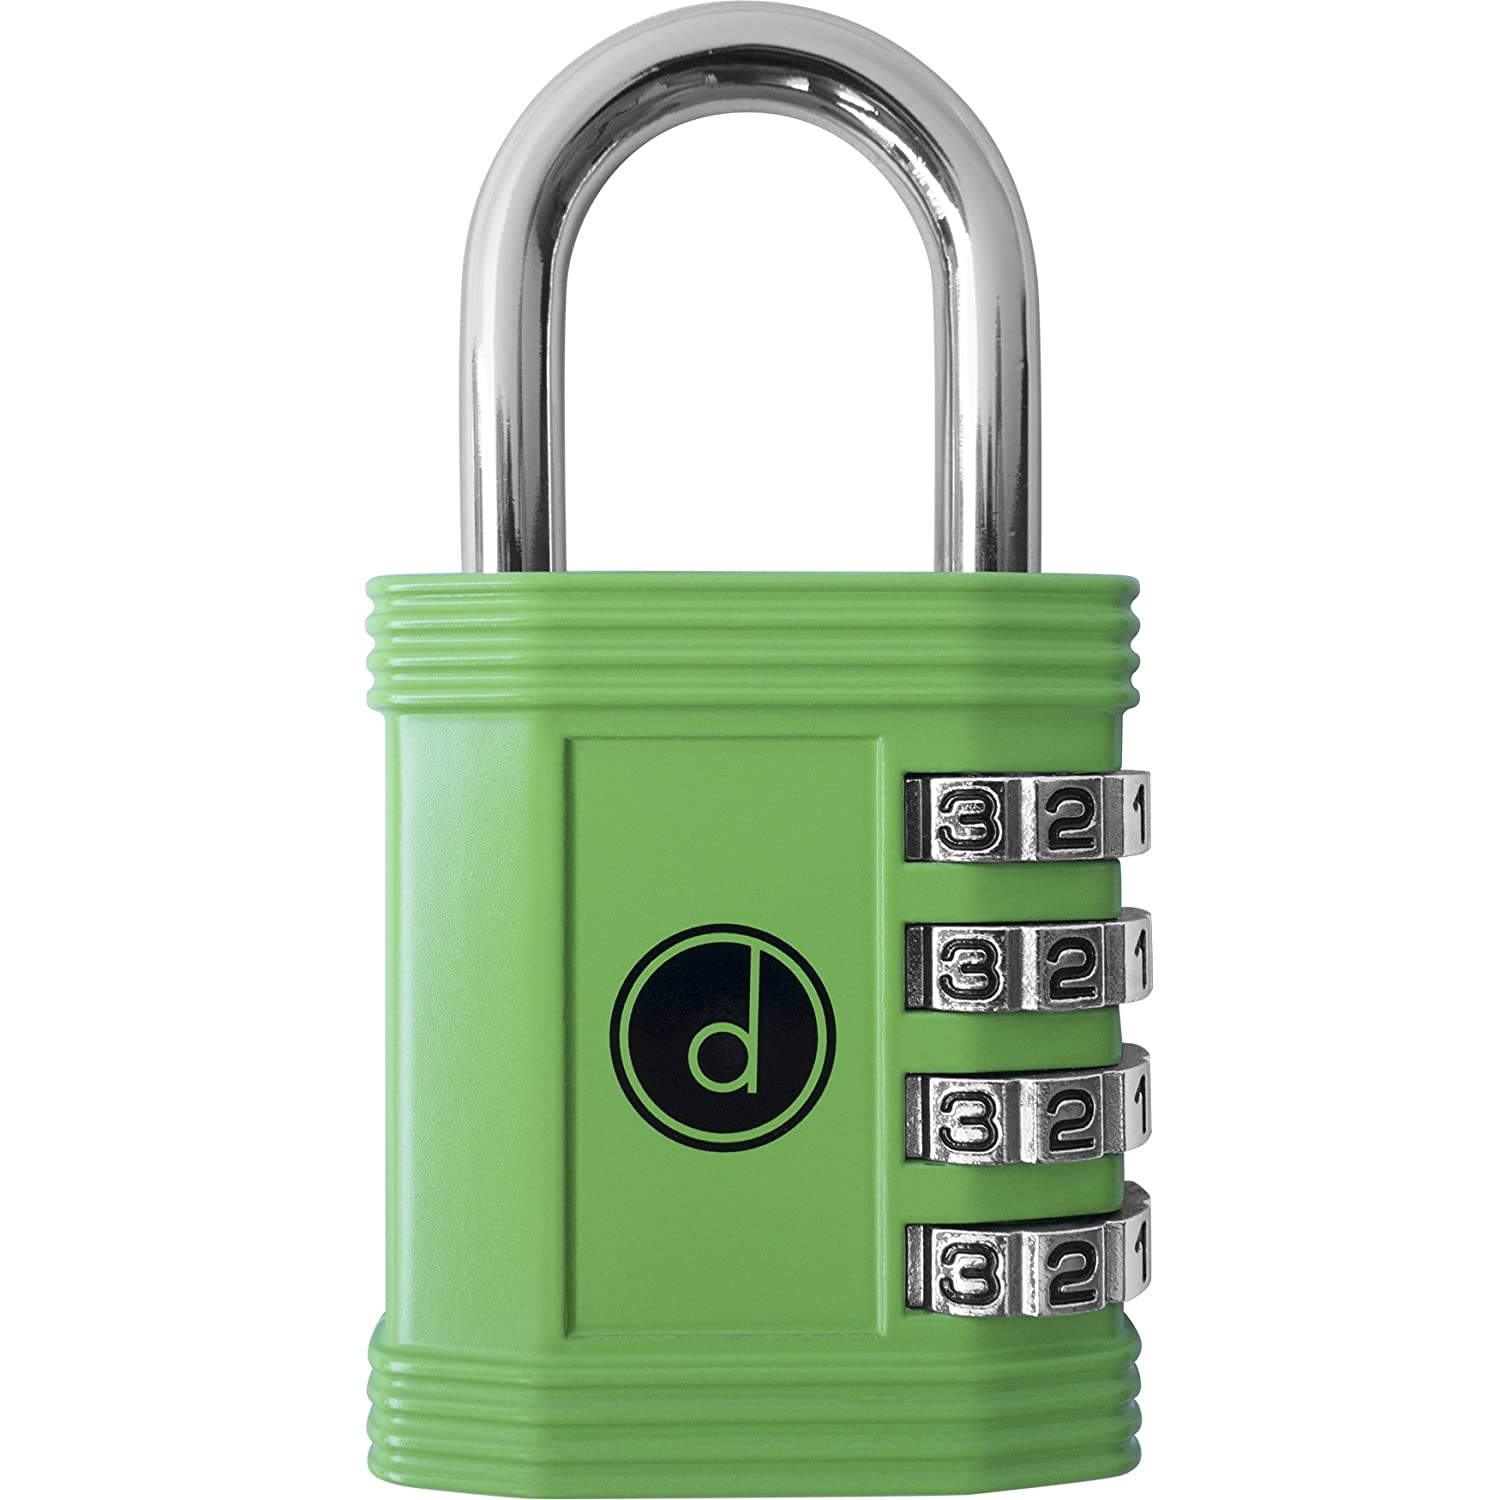 Padlock - 4 Digit Combination Lock for Gym, Sports, School & Employee Locker, Outdoor, Fence, Hasp and Storage - All Weather Metal & Steel - Easy to Set Your Own Keyless Resettable Combo